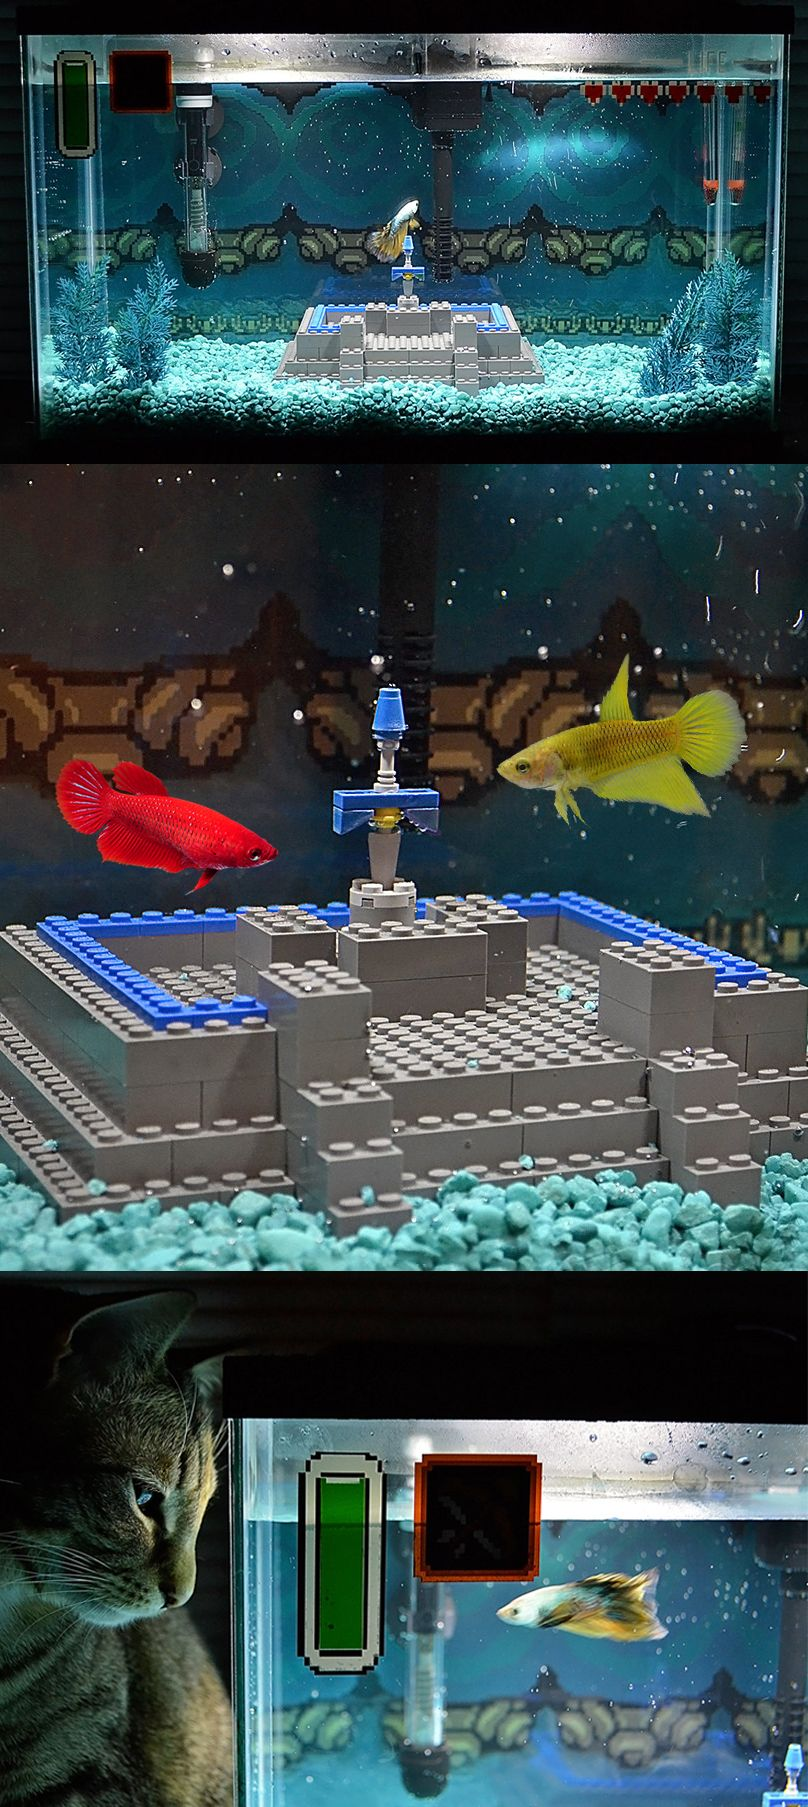 Aquarium fish tank game - This Beautifully Put Together Aquarium Not Only Looks Amazing But Is Designed For Fish To